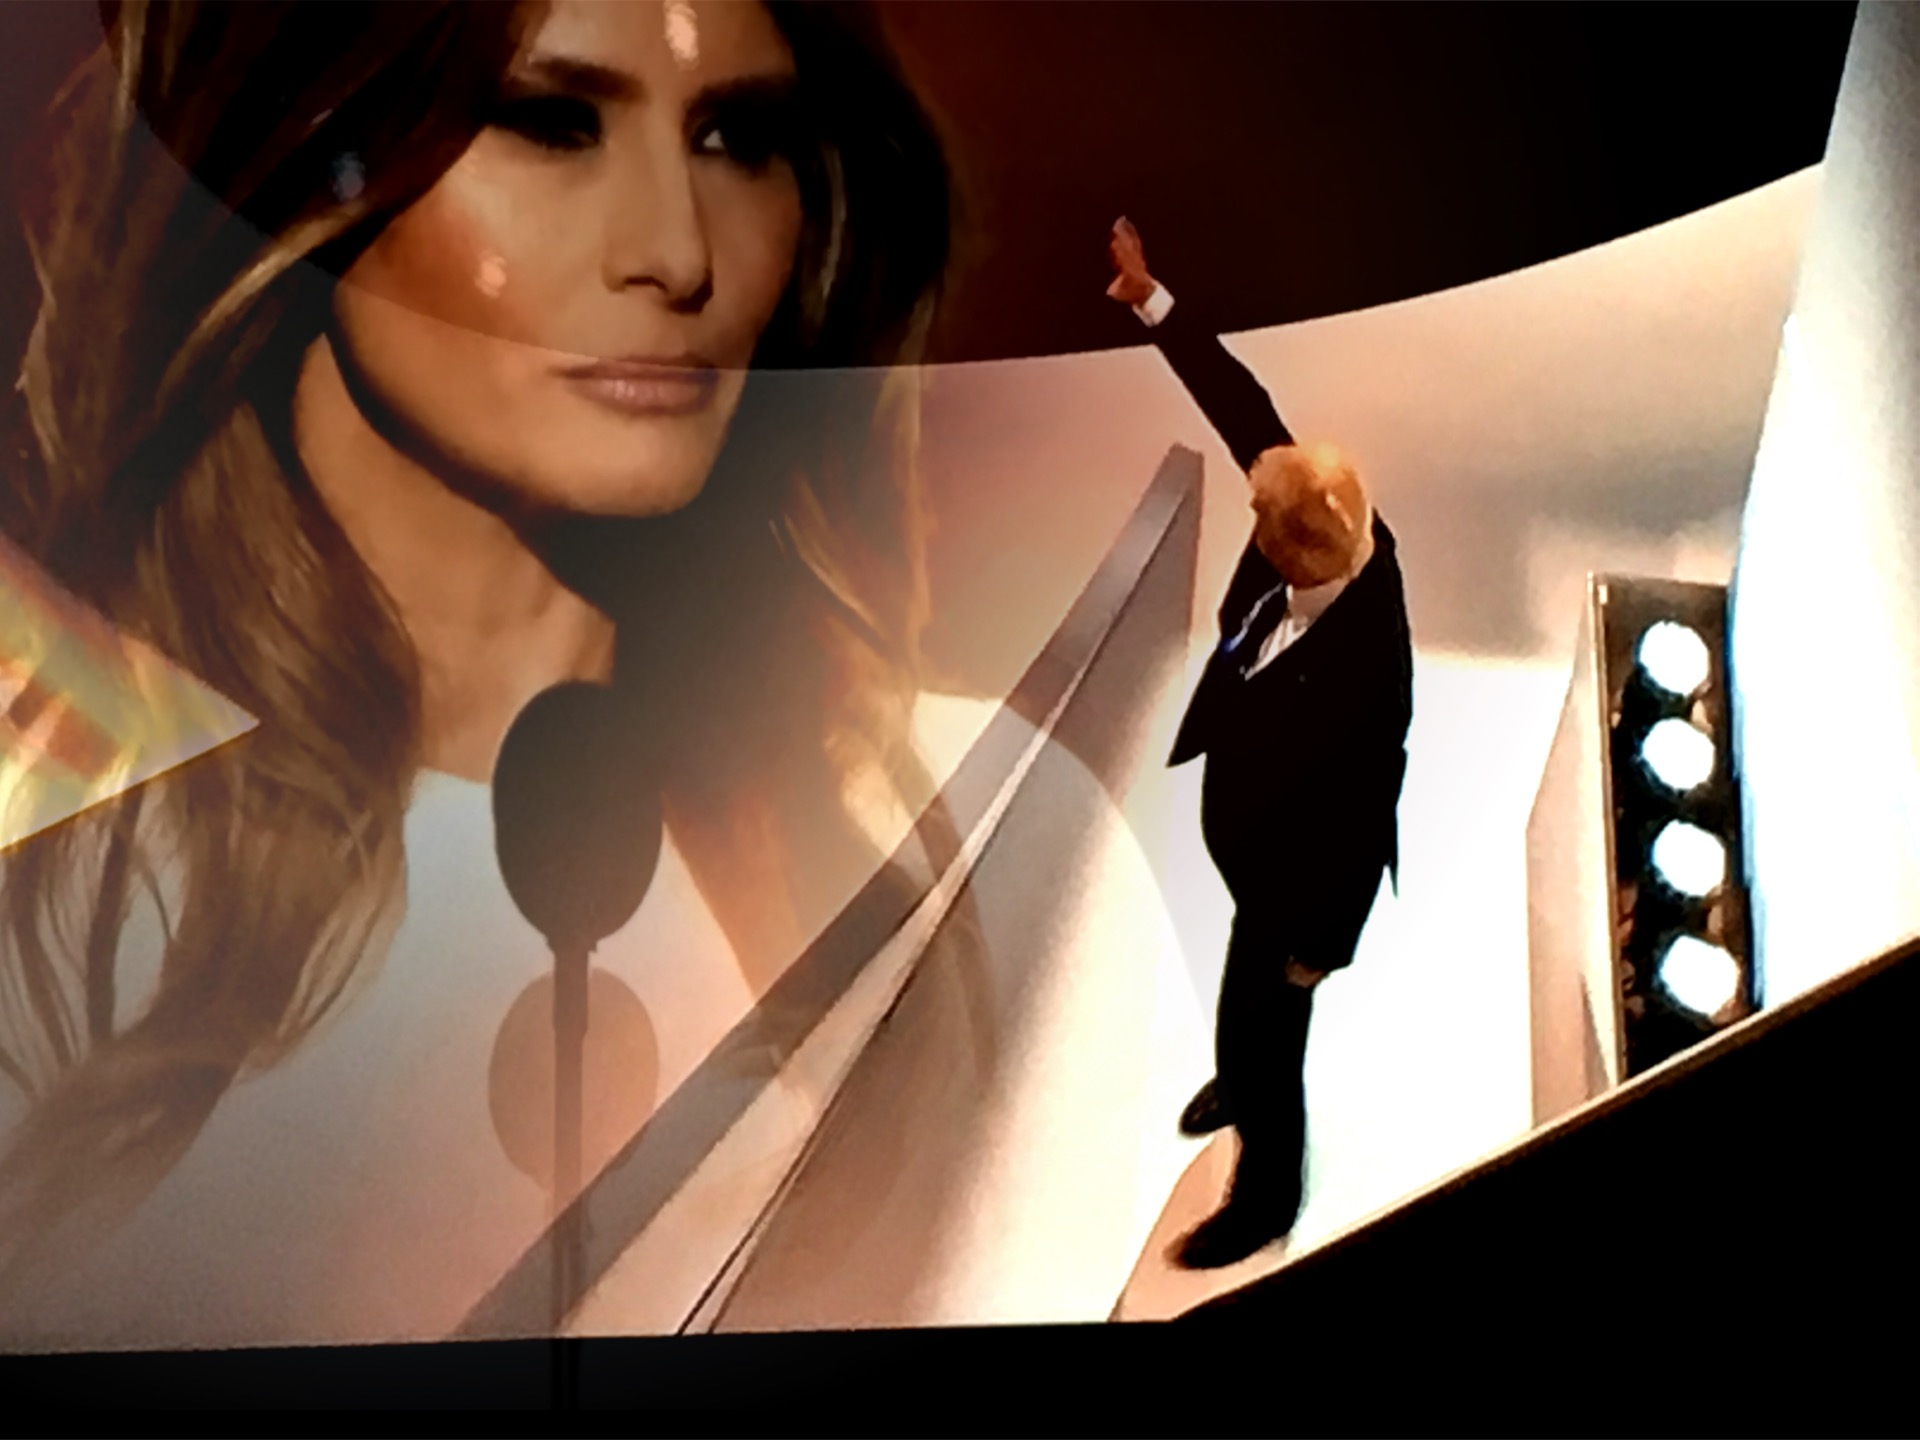 Melania Trump during her speech, and Donald Trump after Melania's speech at the RNC. (Composite image by Biz Herman/GroundTruth)